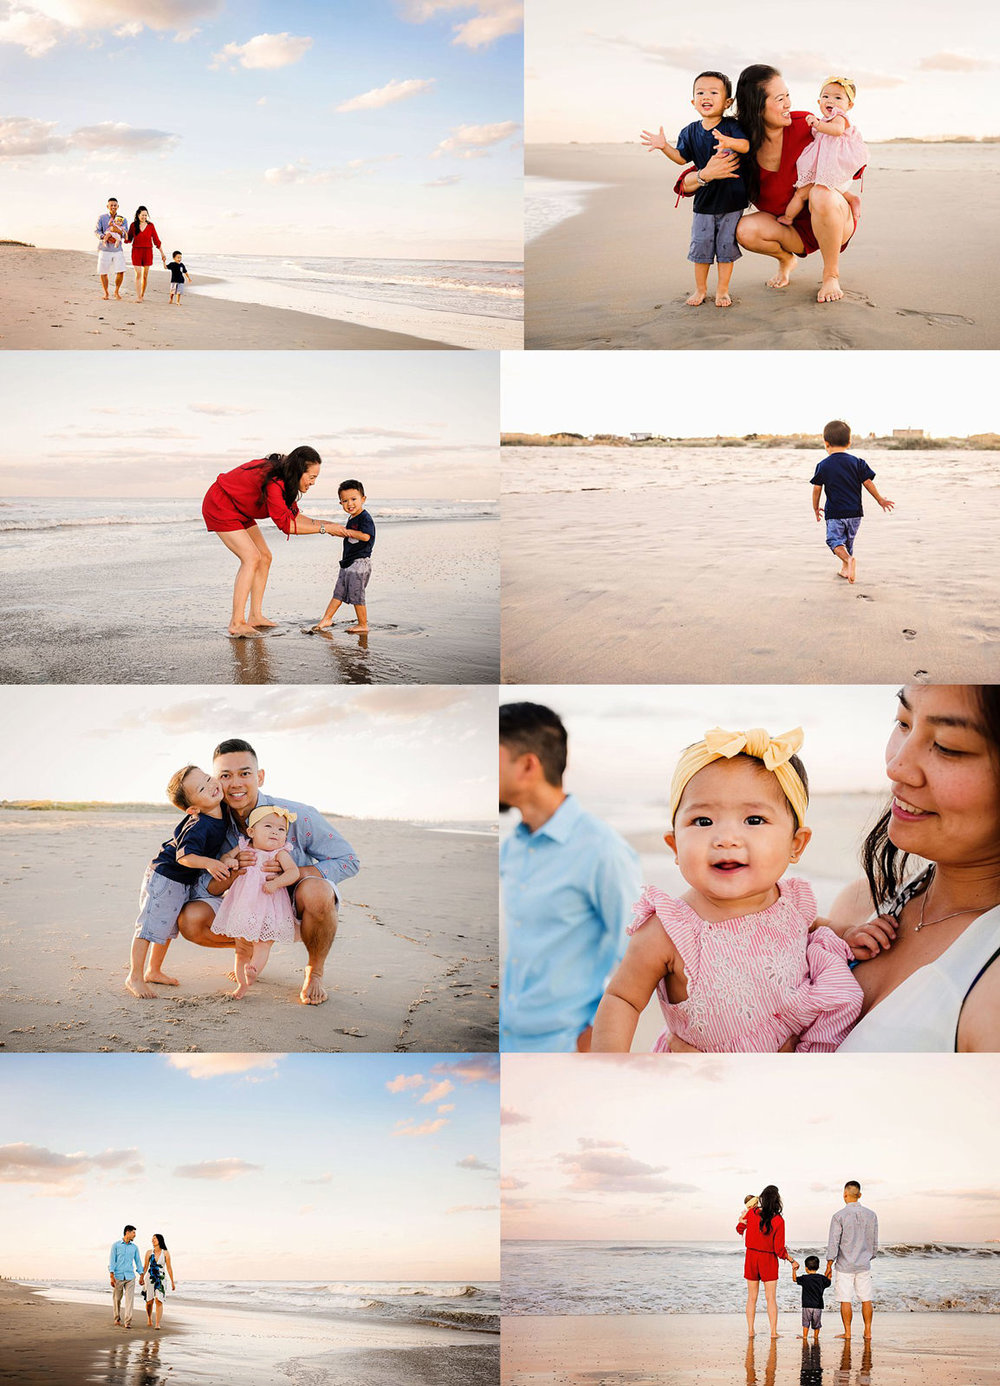 virginia-beach-family-lifestyle-beach-photos-melissa-bliss-photography-beach-sessions.jpg